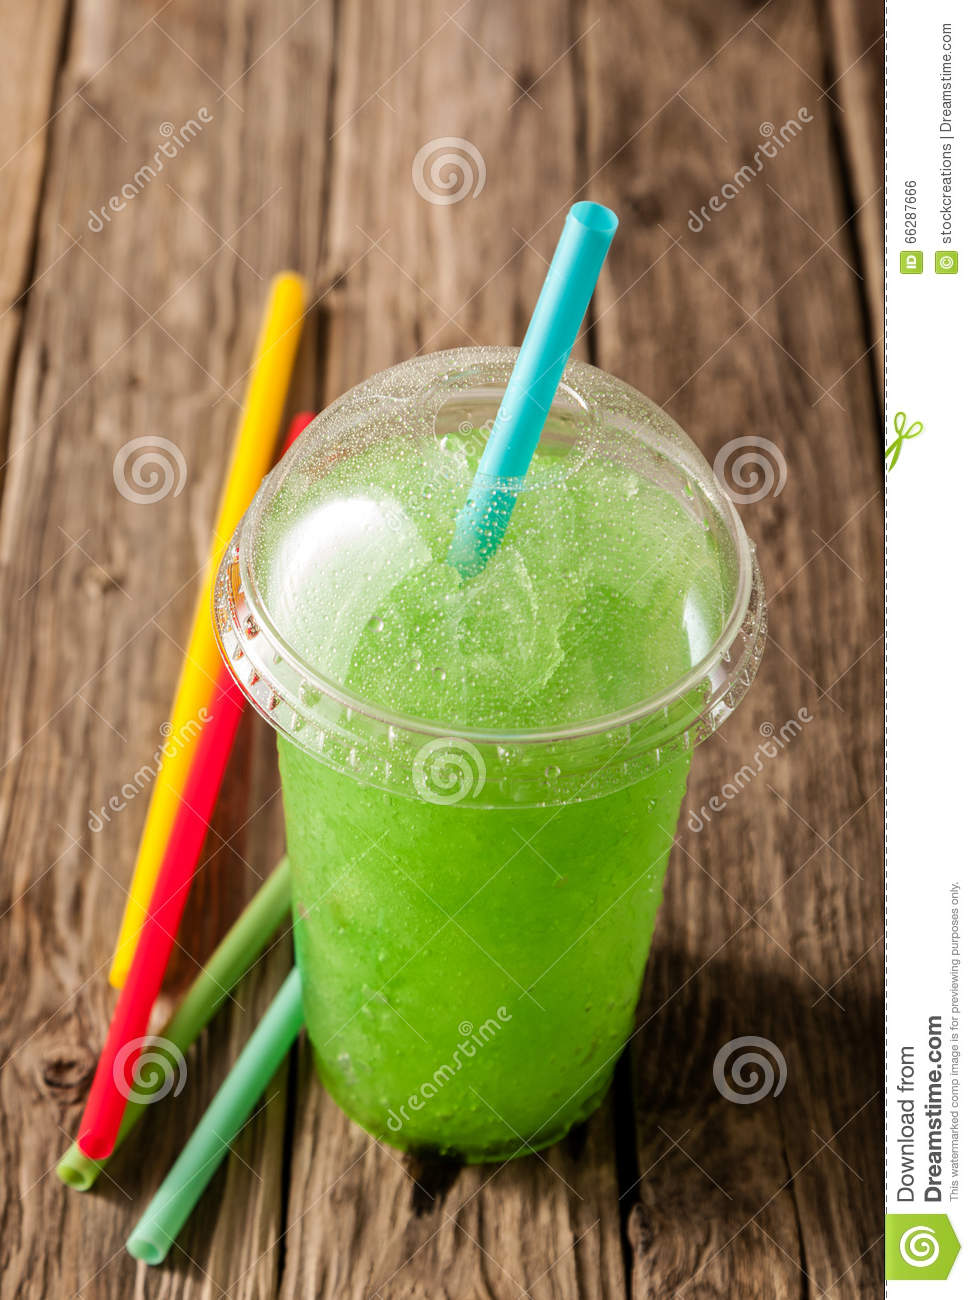 Green Slushie Drink In Plastic Cup With Straws Stock Photo